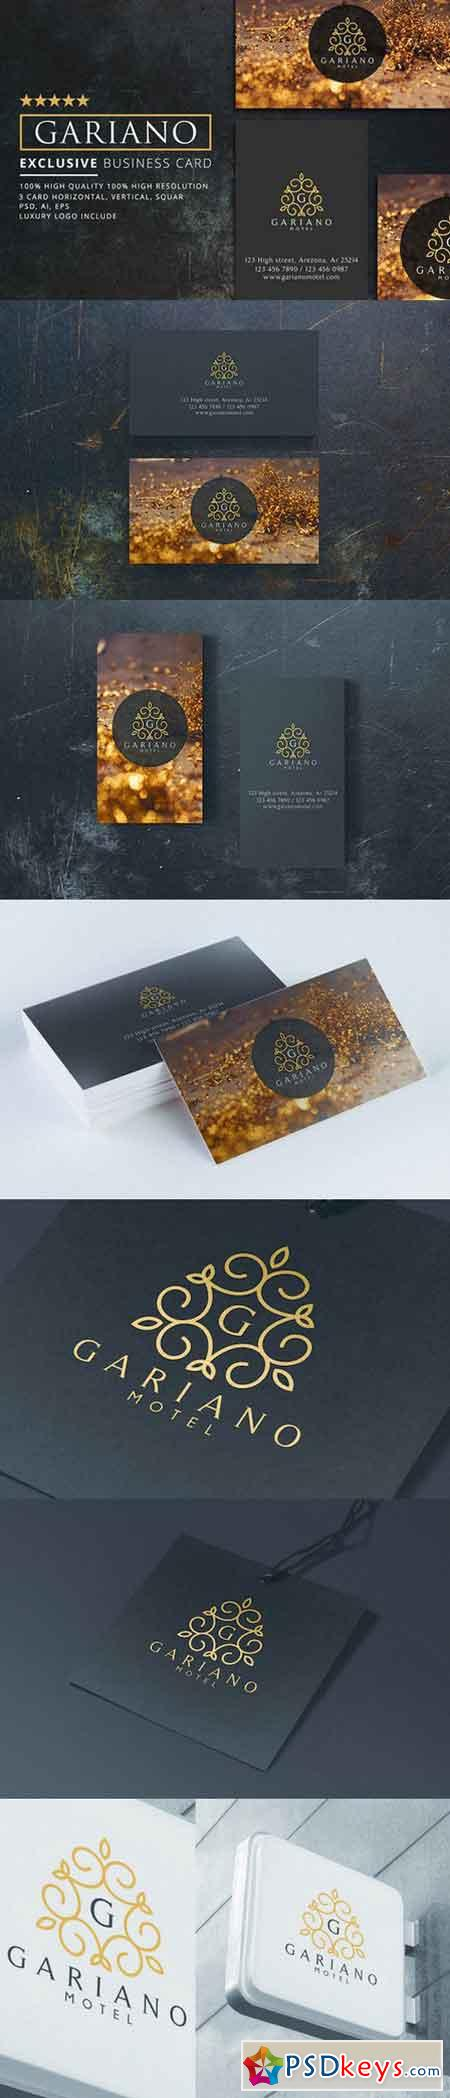 Gariano Luxury Business Card 3 in 1 1015971